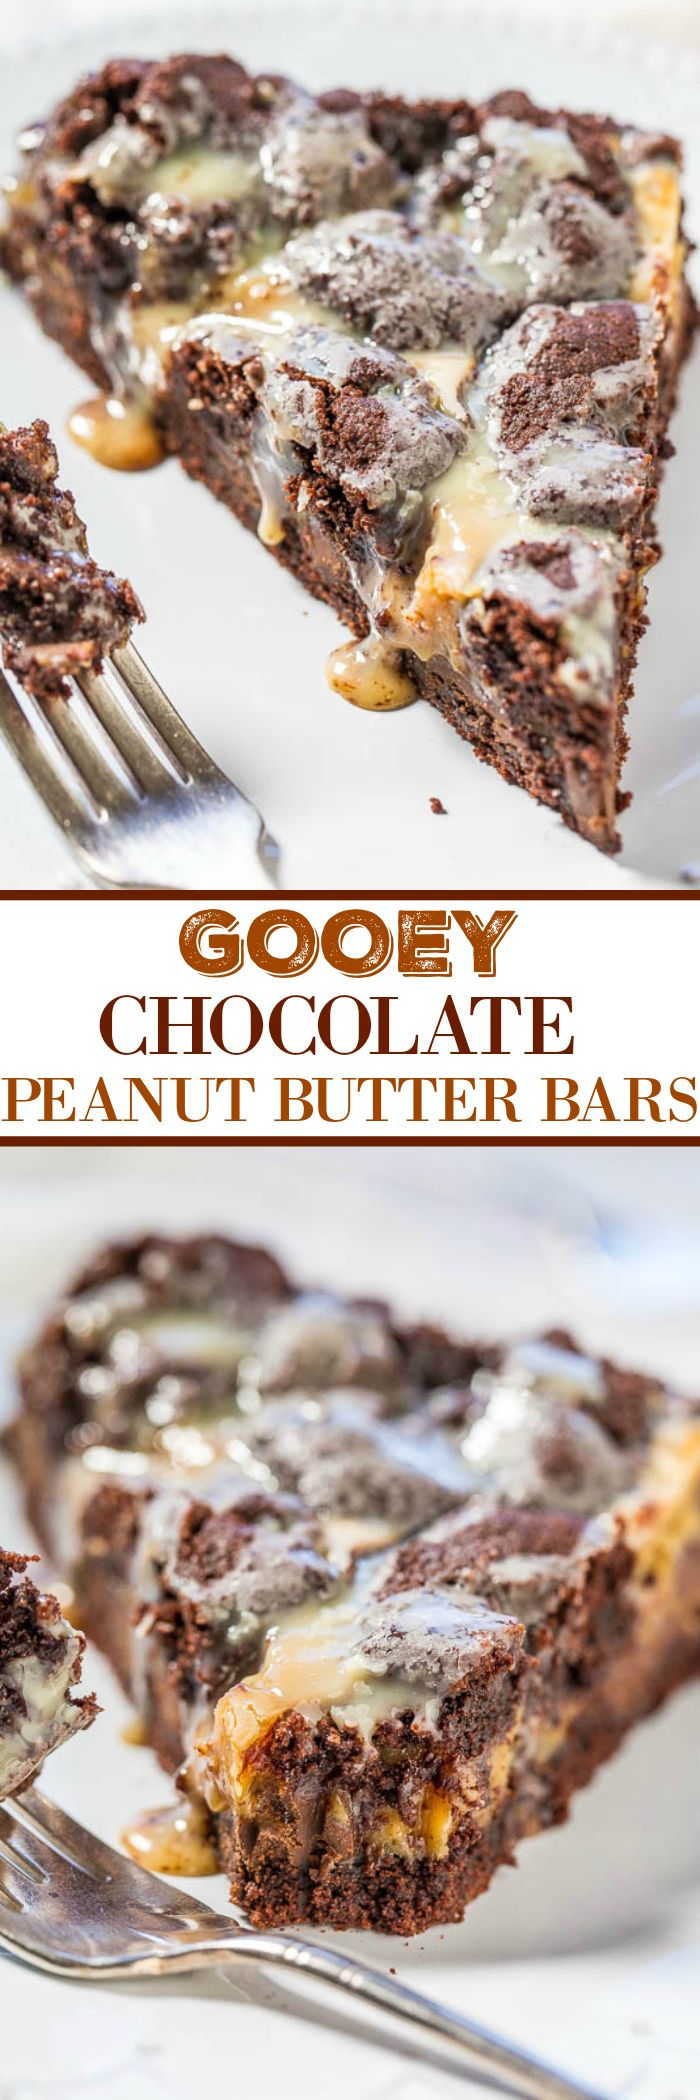 Gooey Chocolate Peanut Butter Bars - A rich, fudgy, decadent, brownie-like base with a peanut butter mixture poured over the top!! Fast and easy! So gooey and so good!! Perfect for your holiday dessert table!